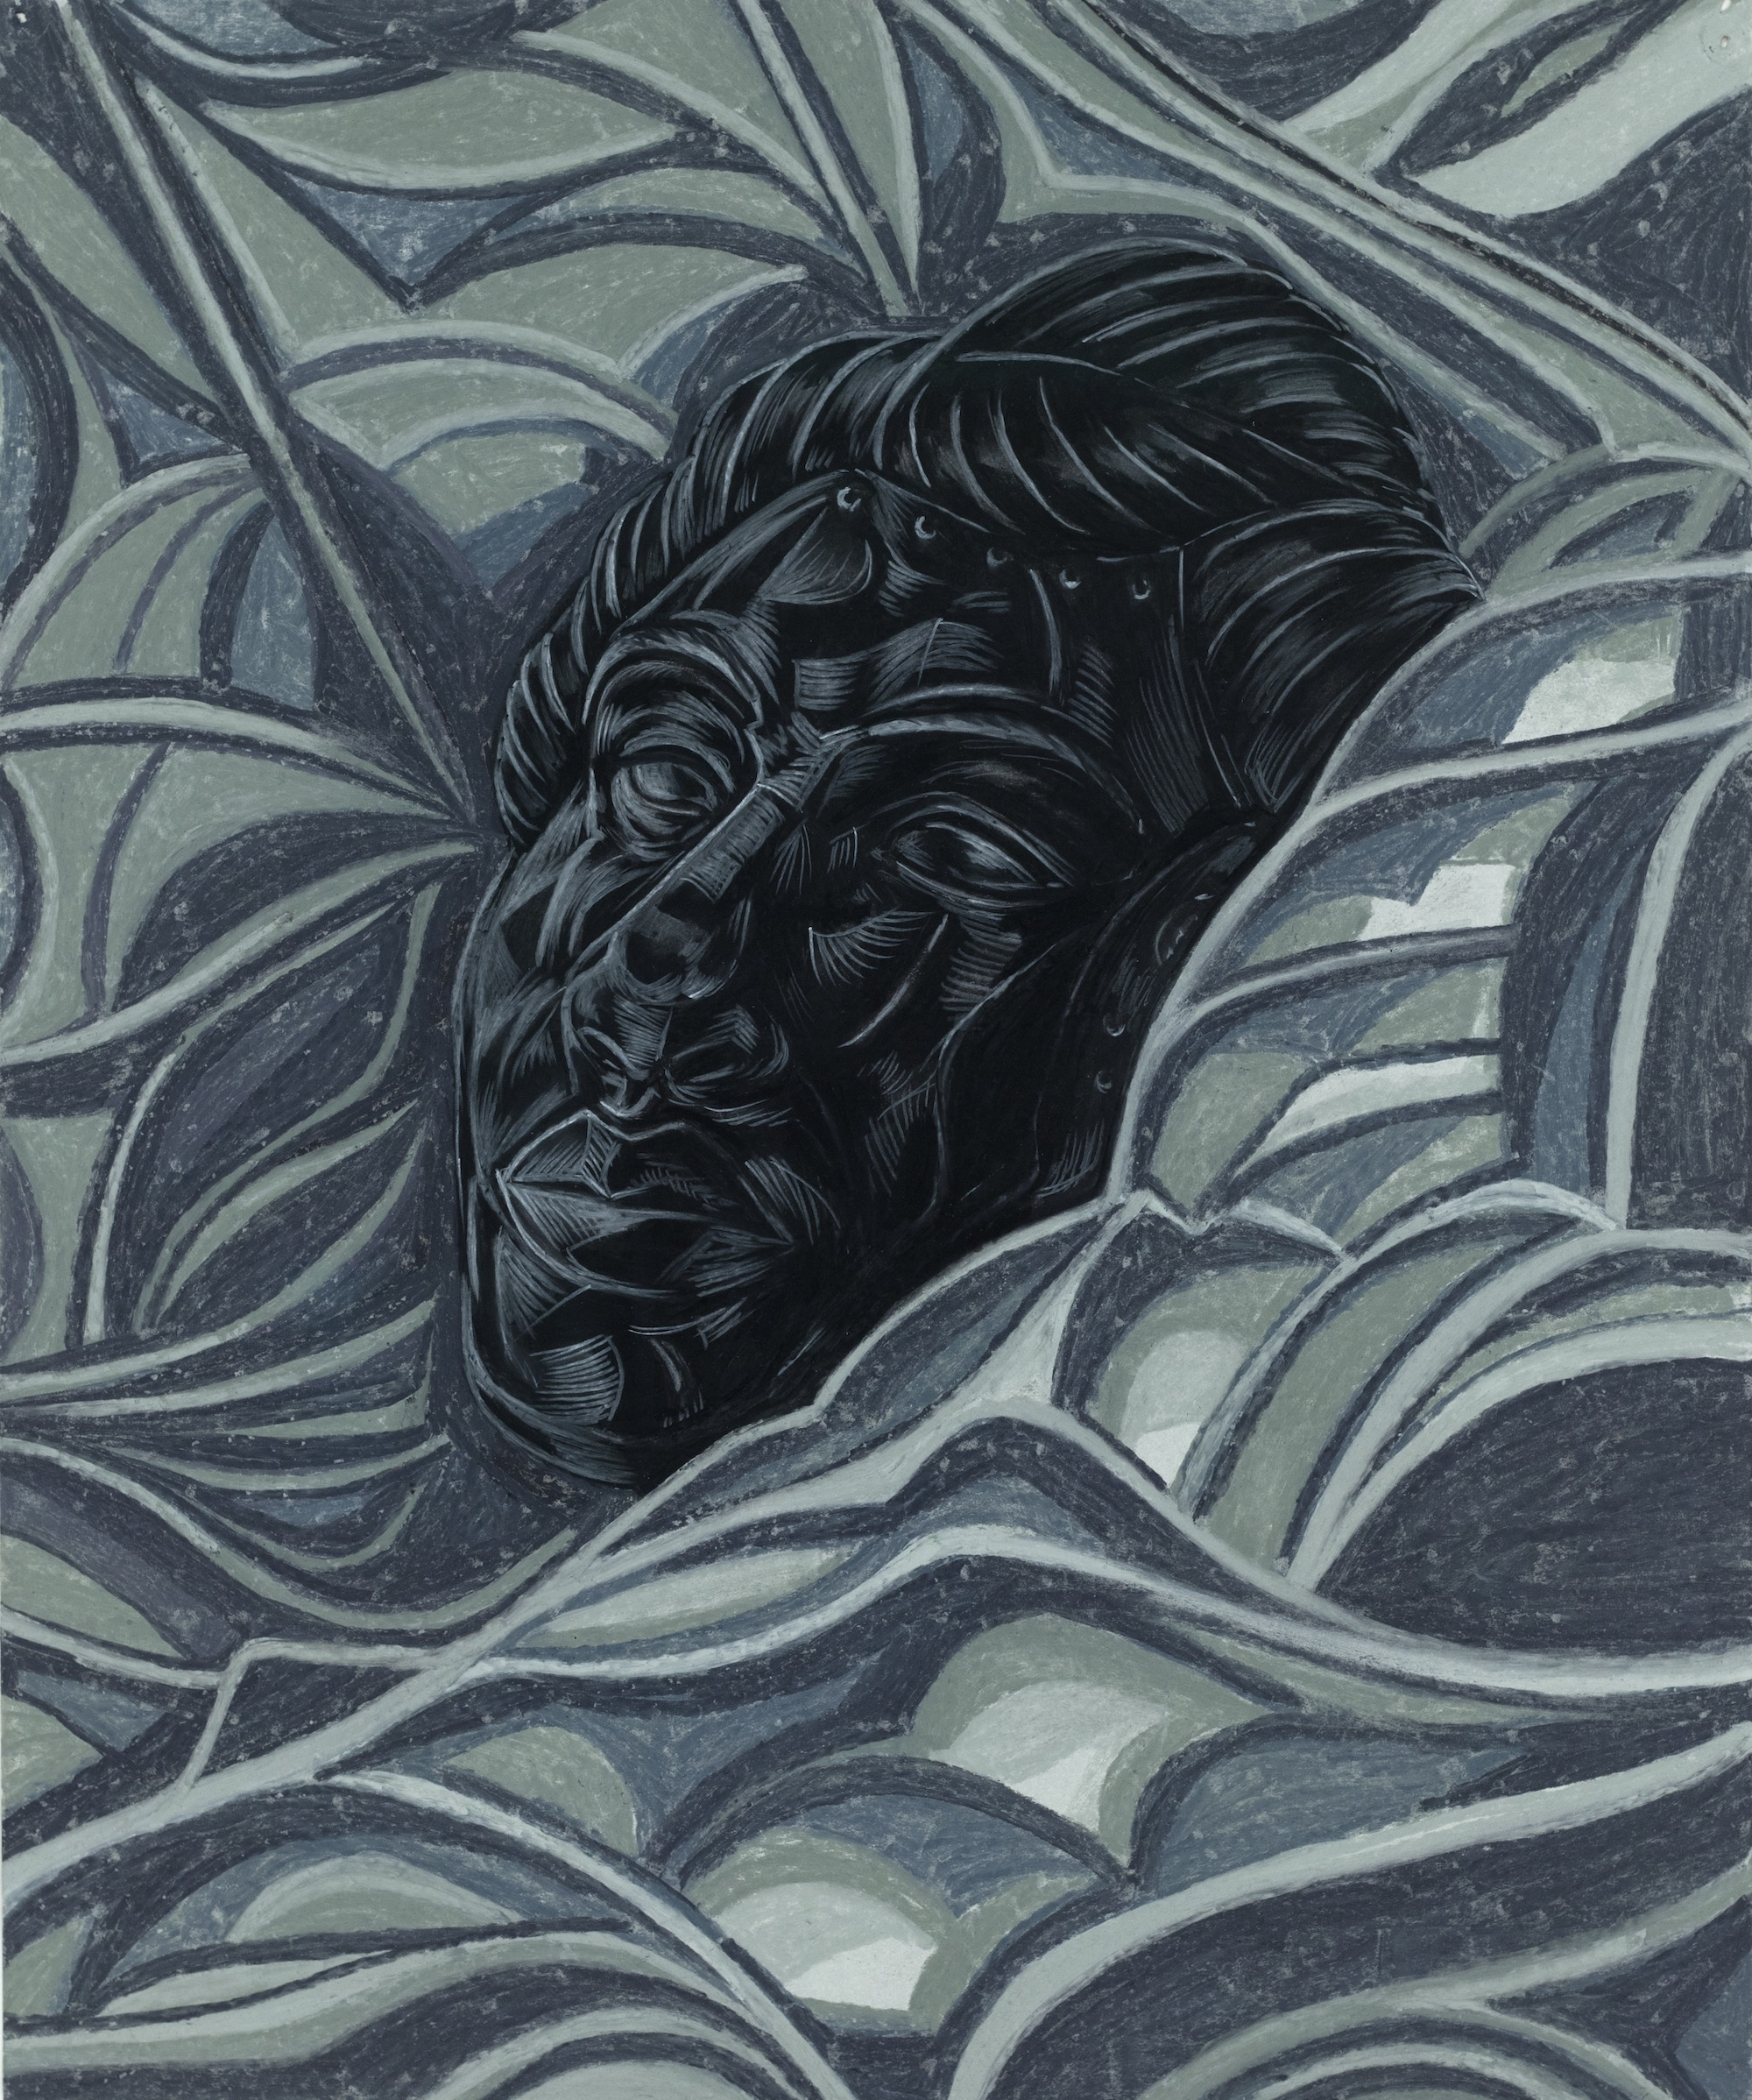 TheUnwrapping (2018) © Toyin Ojih Odutola. Courtesy of the artist and Jack Shainman Gallery, New York